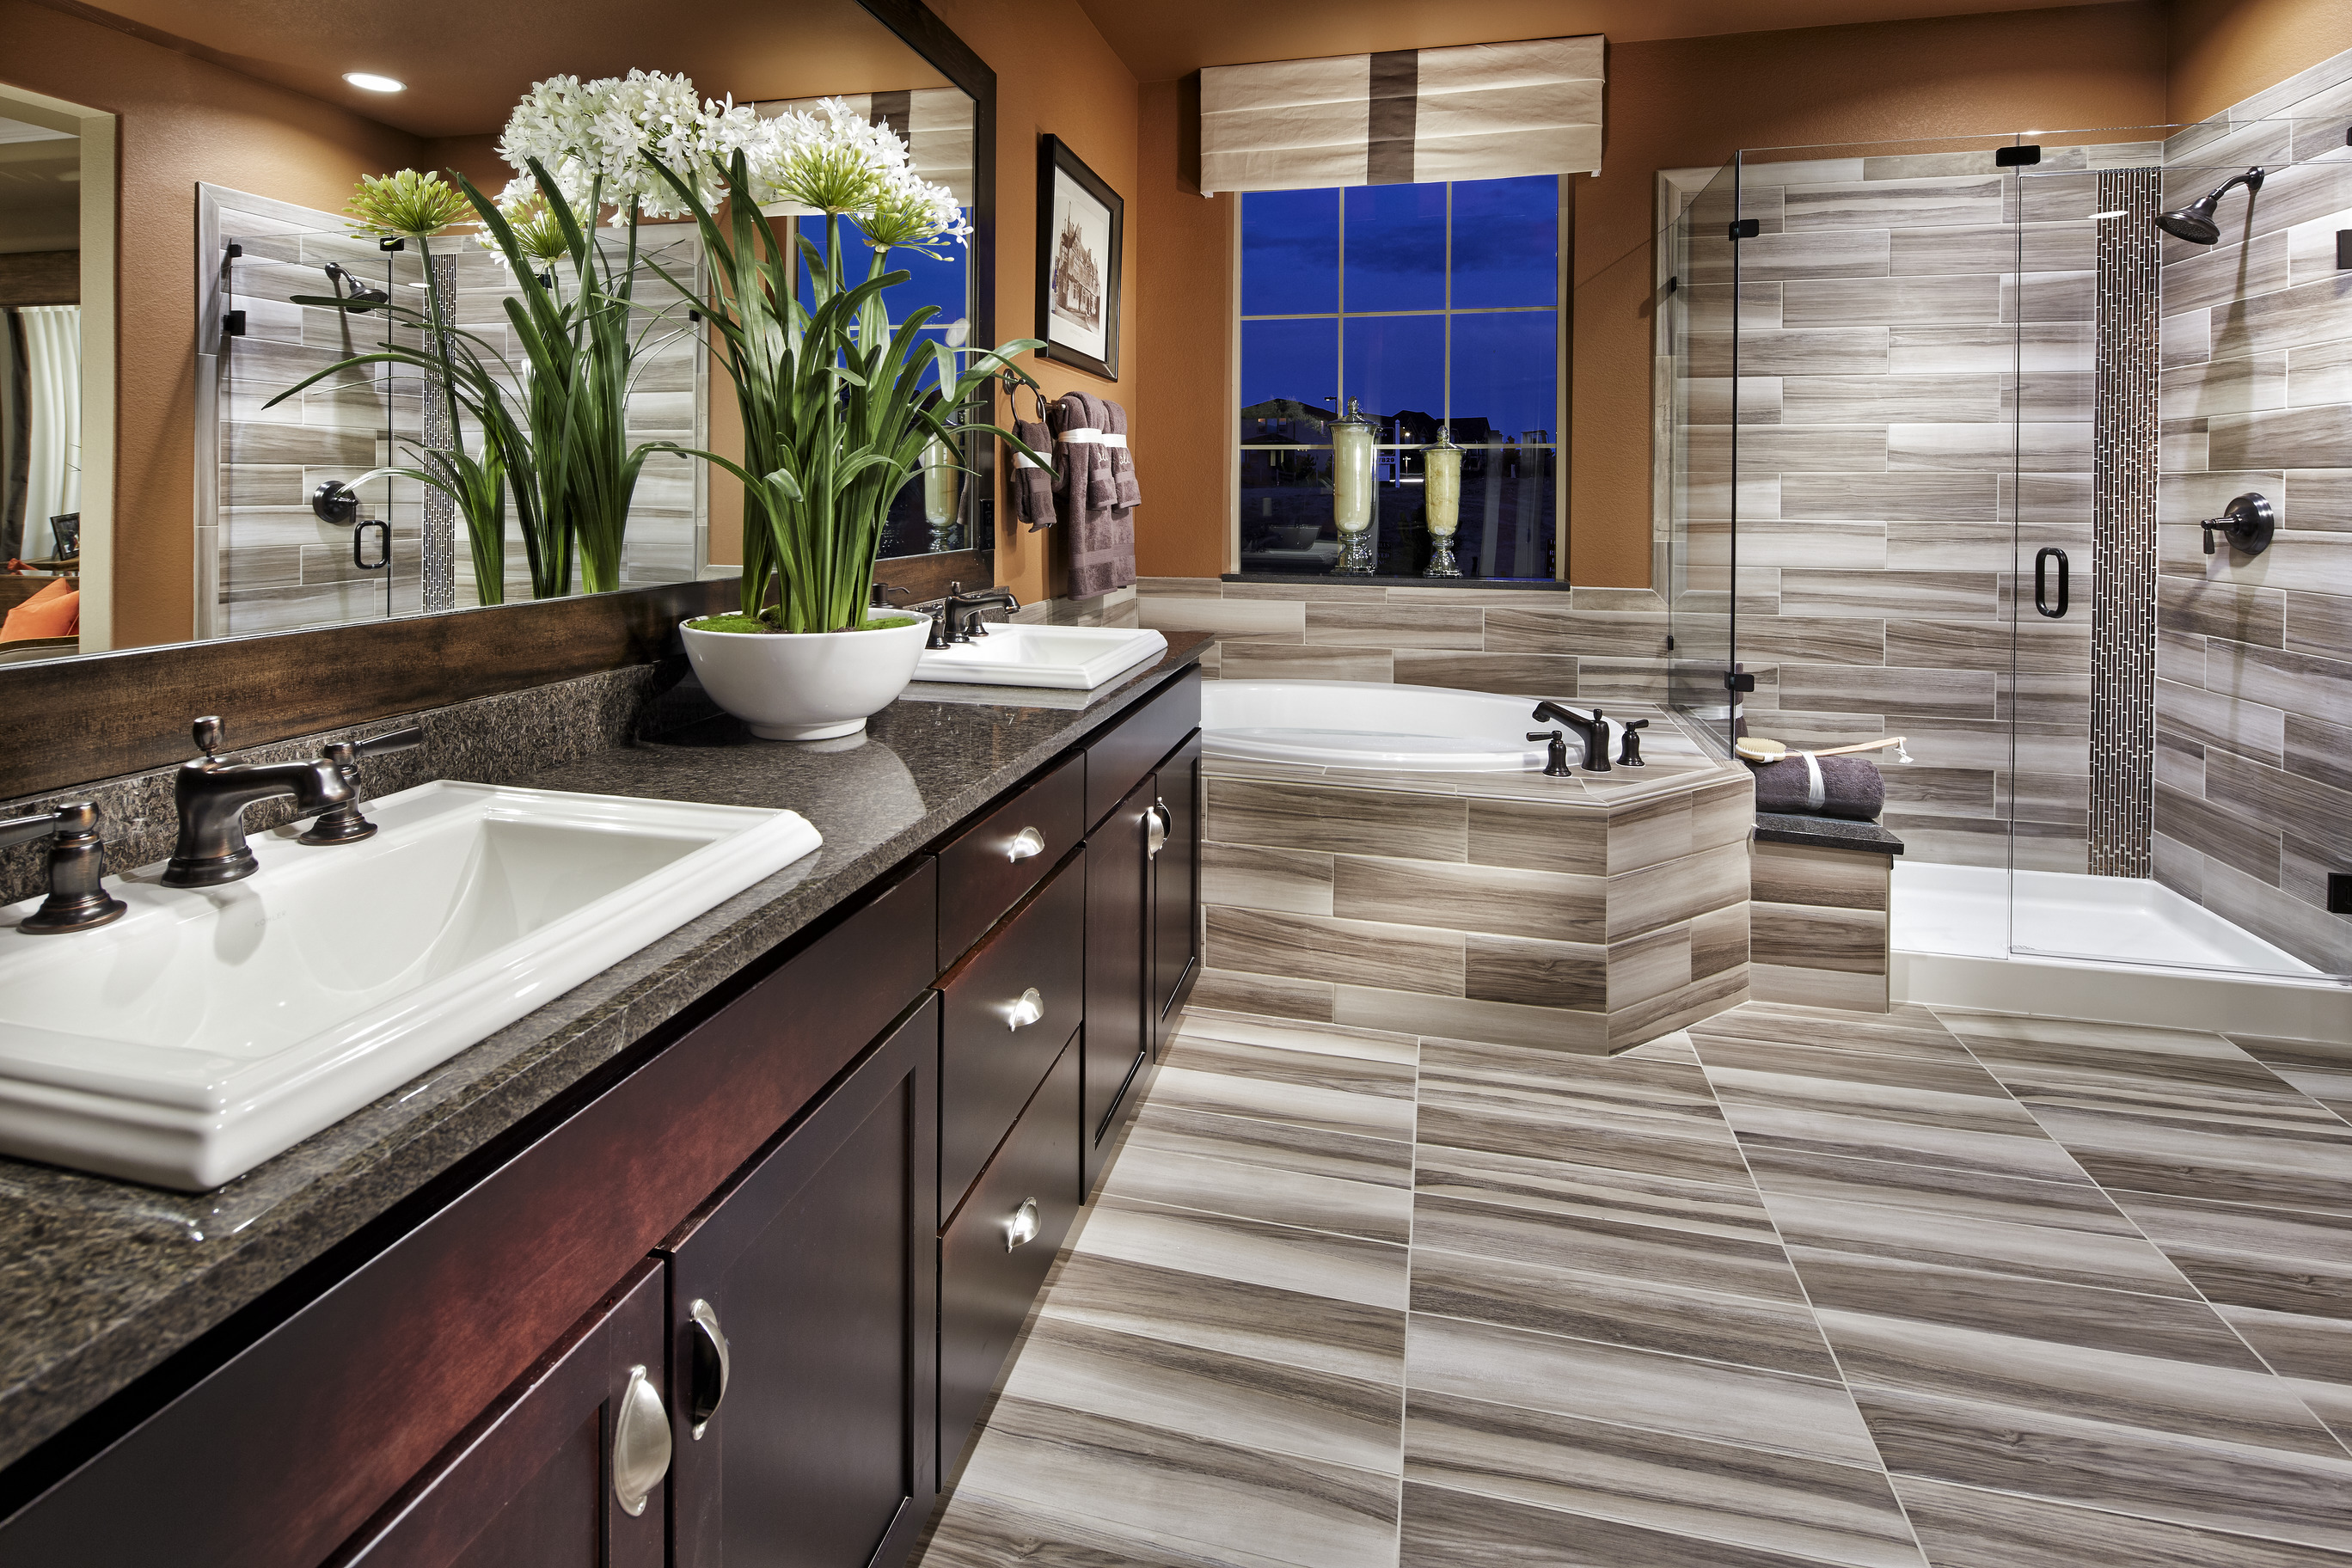 Vibrant bathroom with multicolored floor and siding tiles.